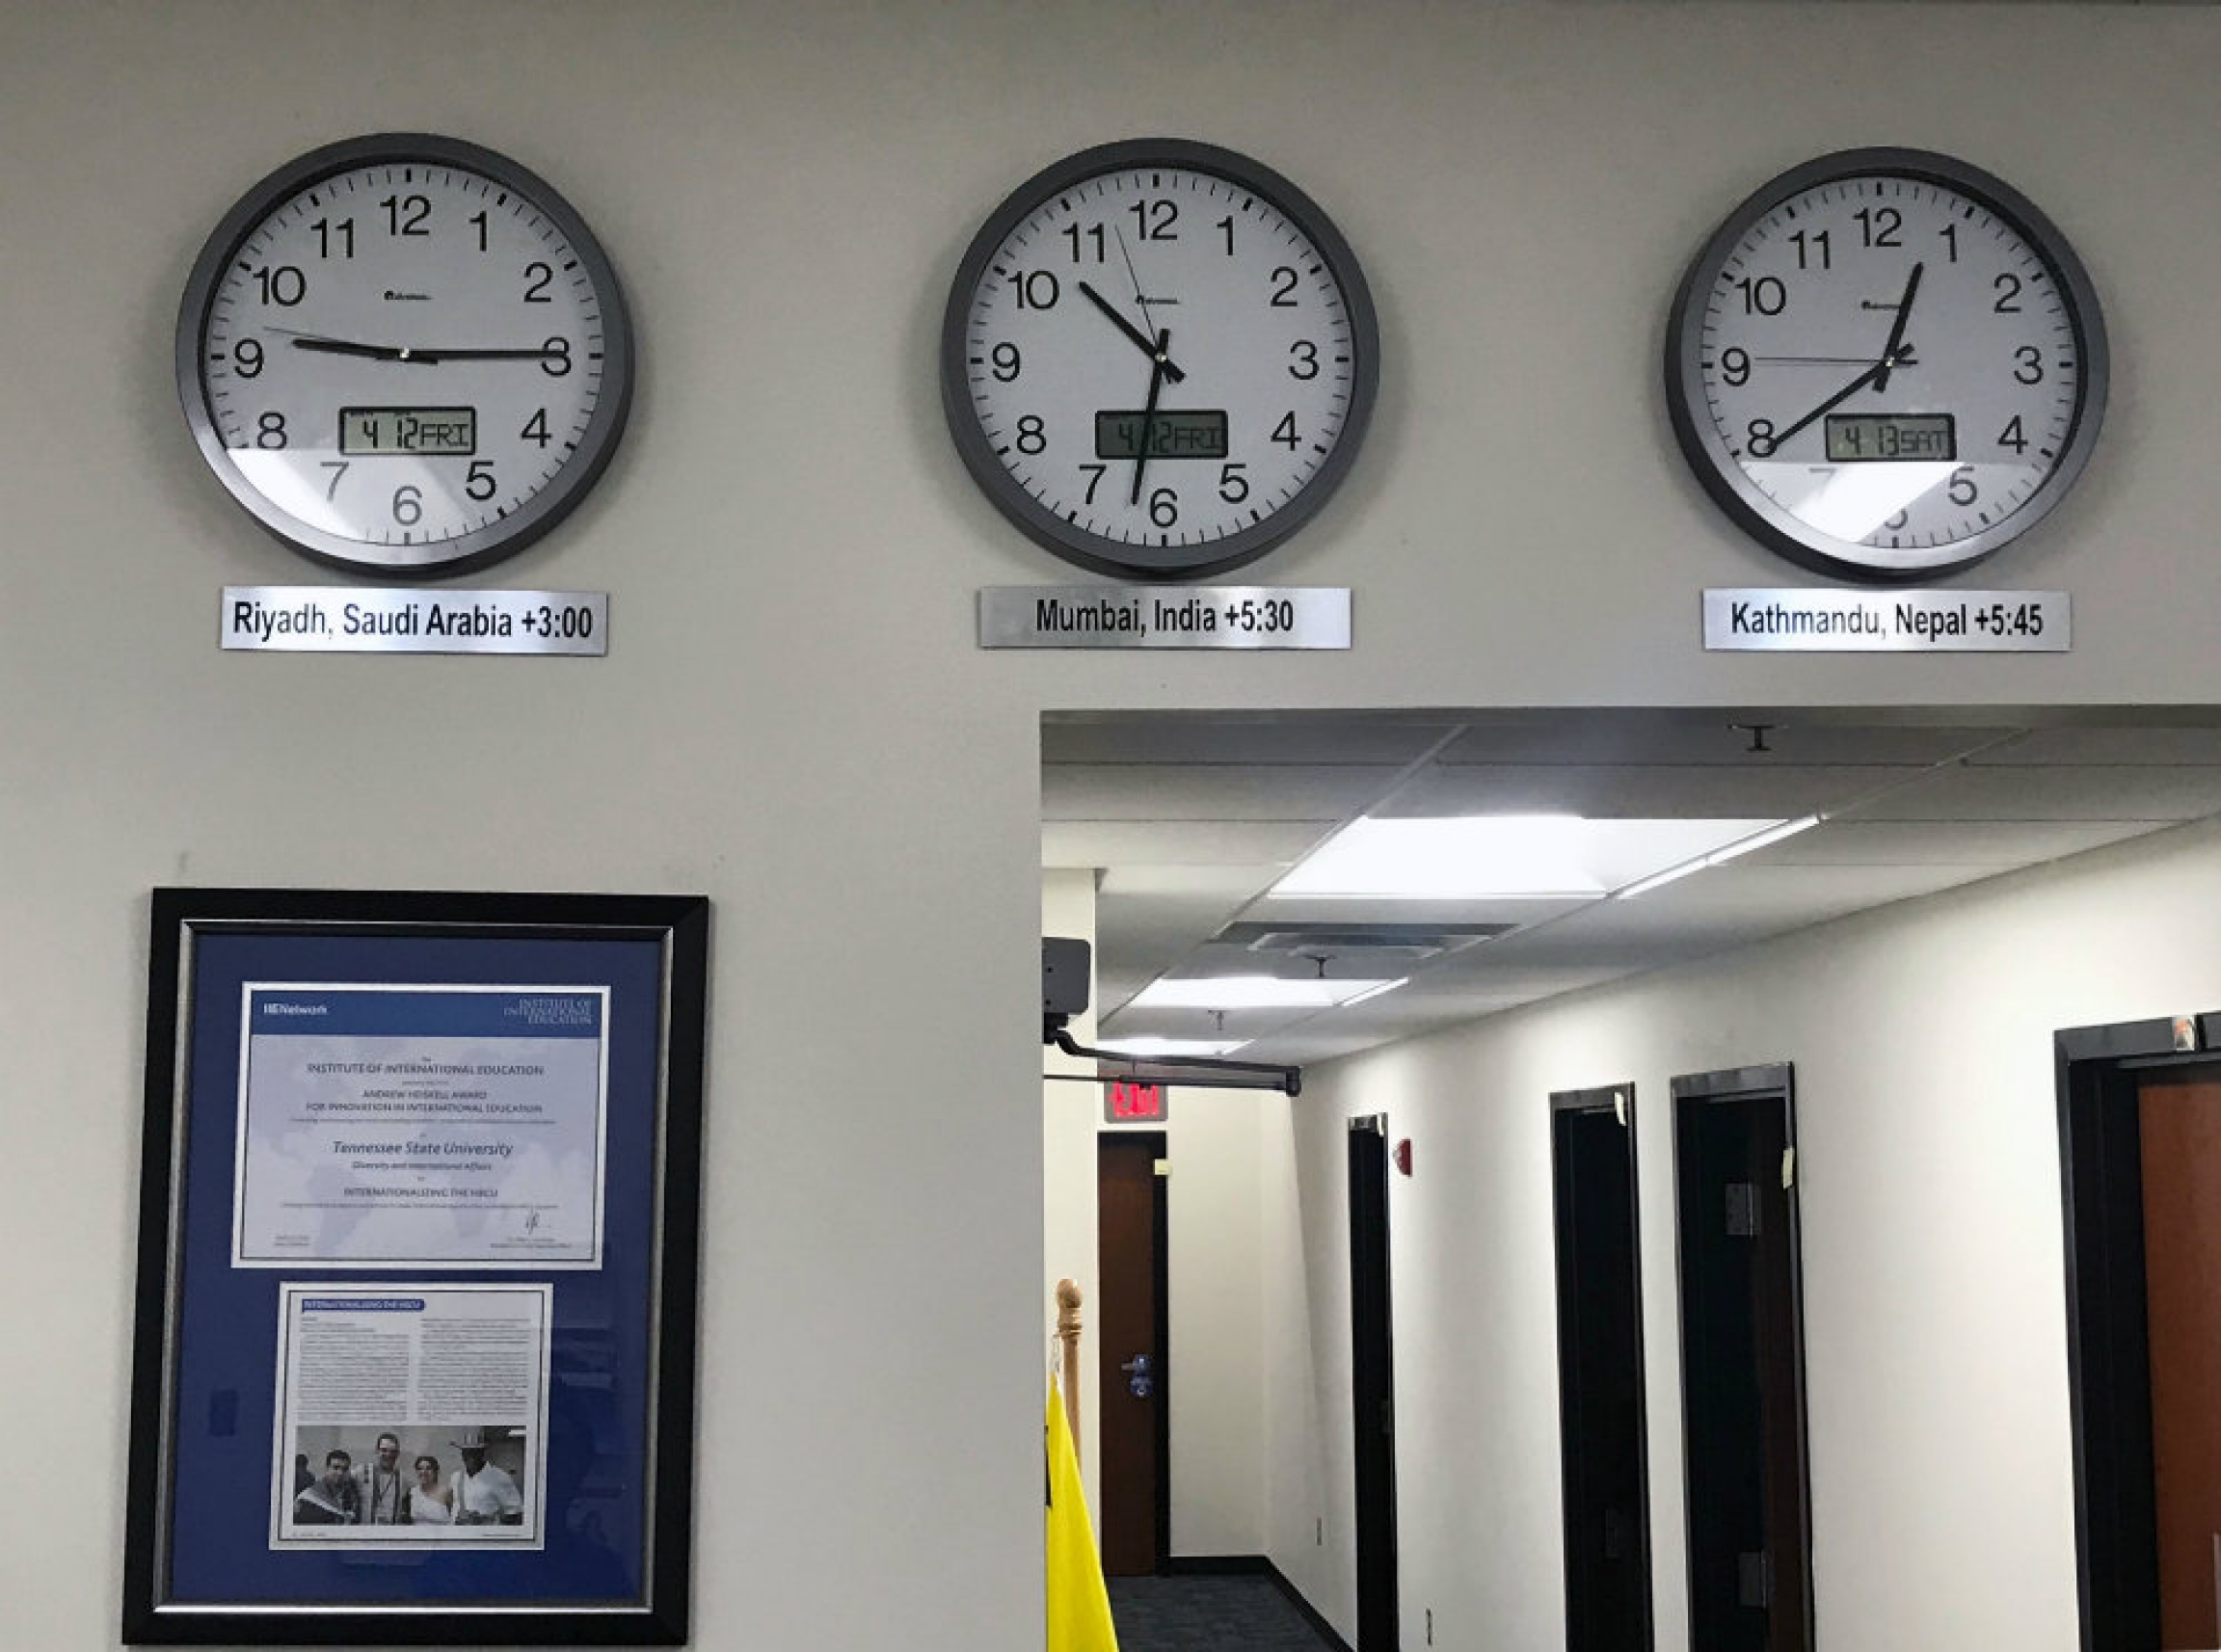 World clocks at Tennessee State University